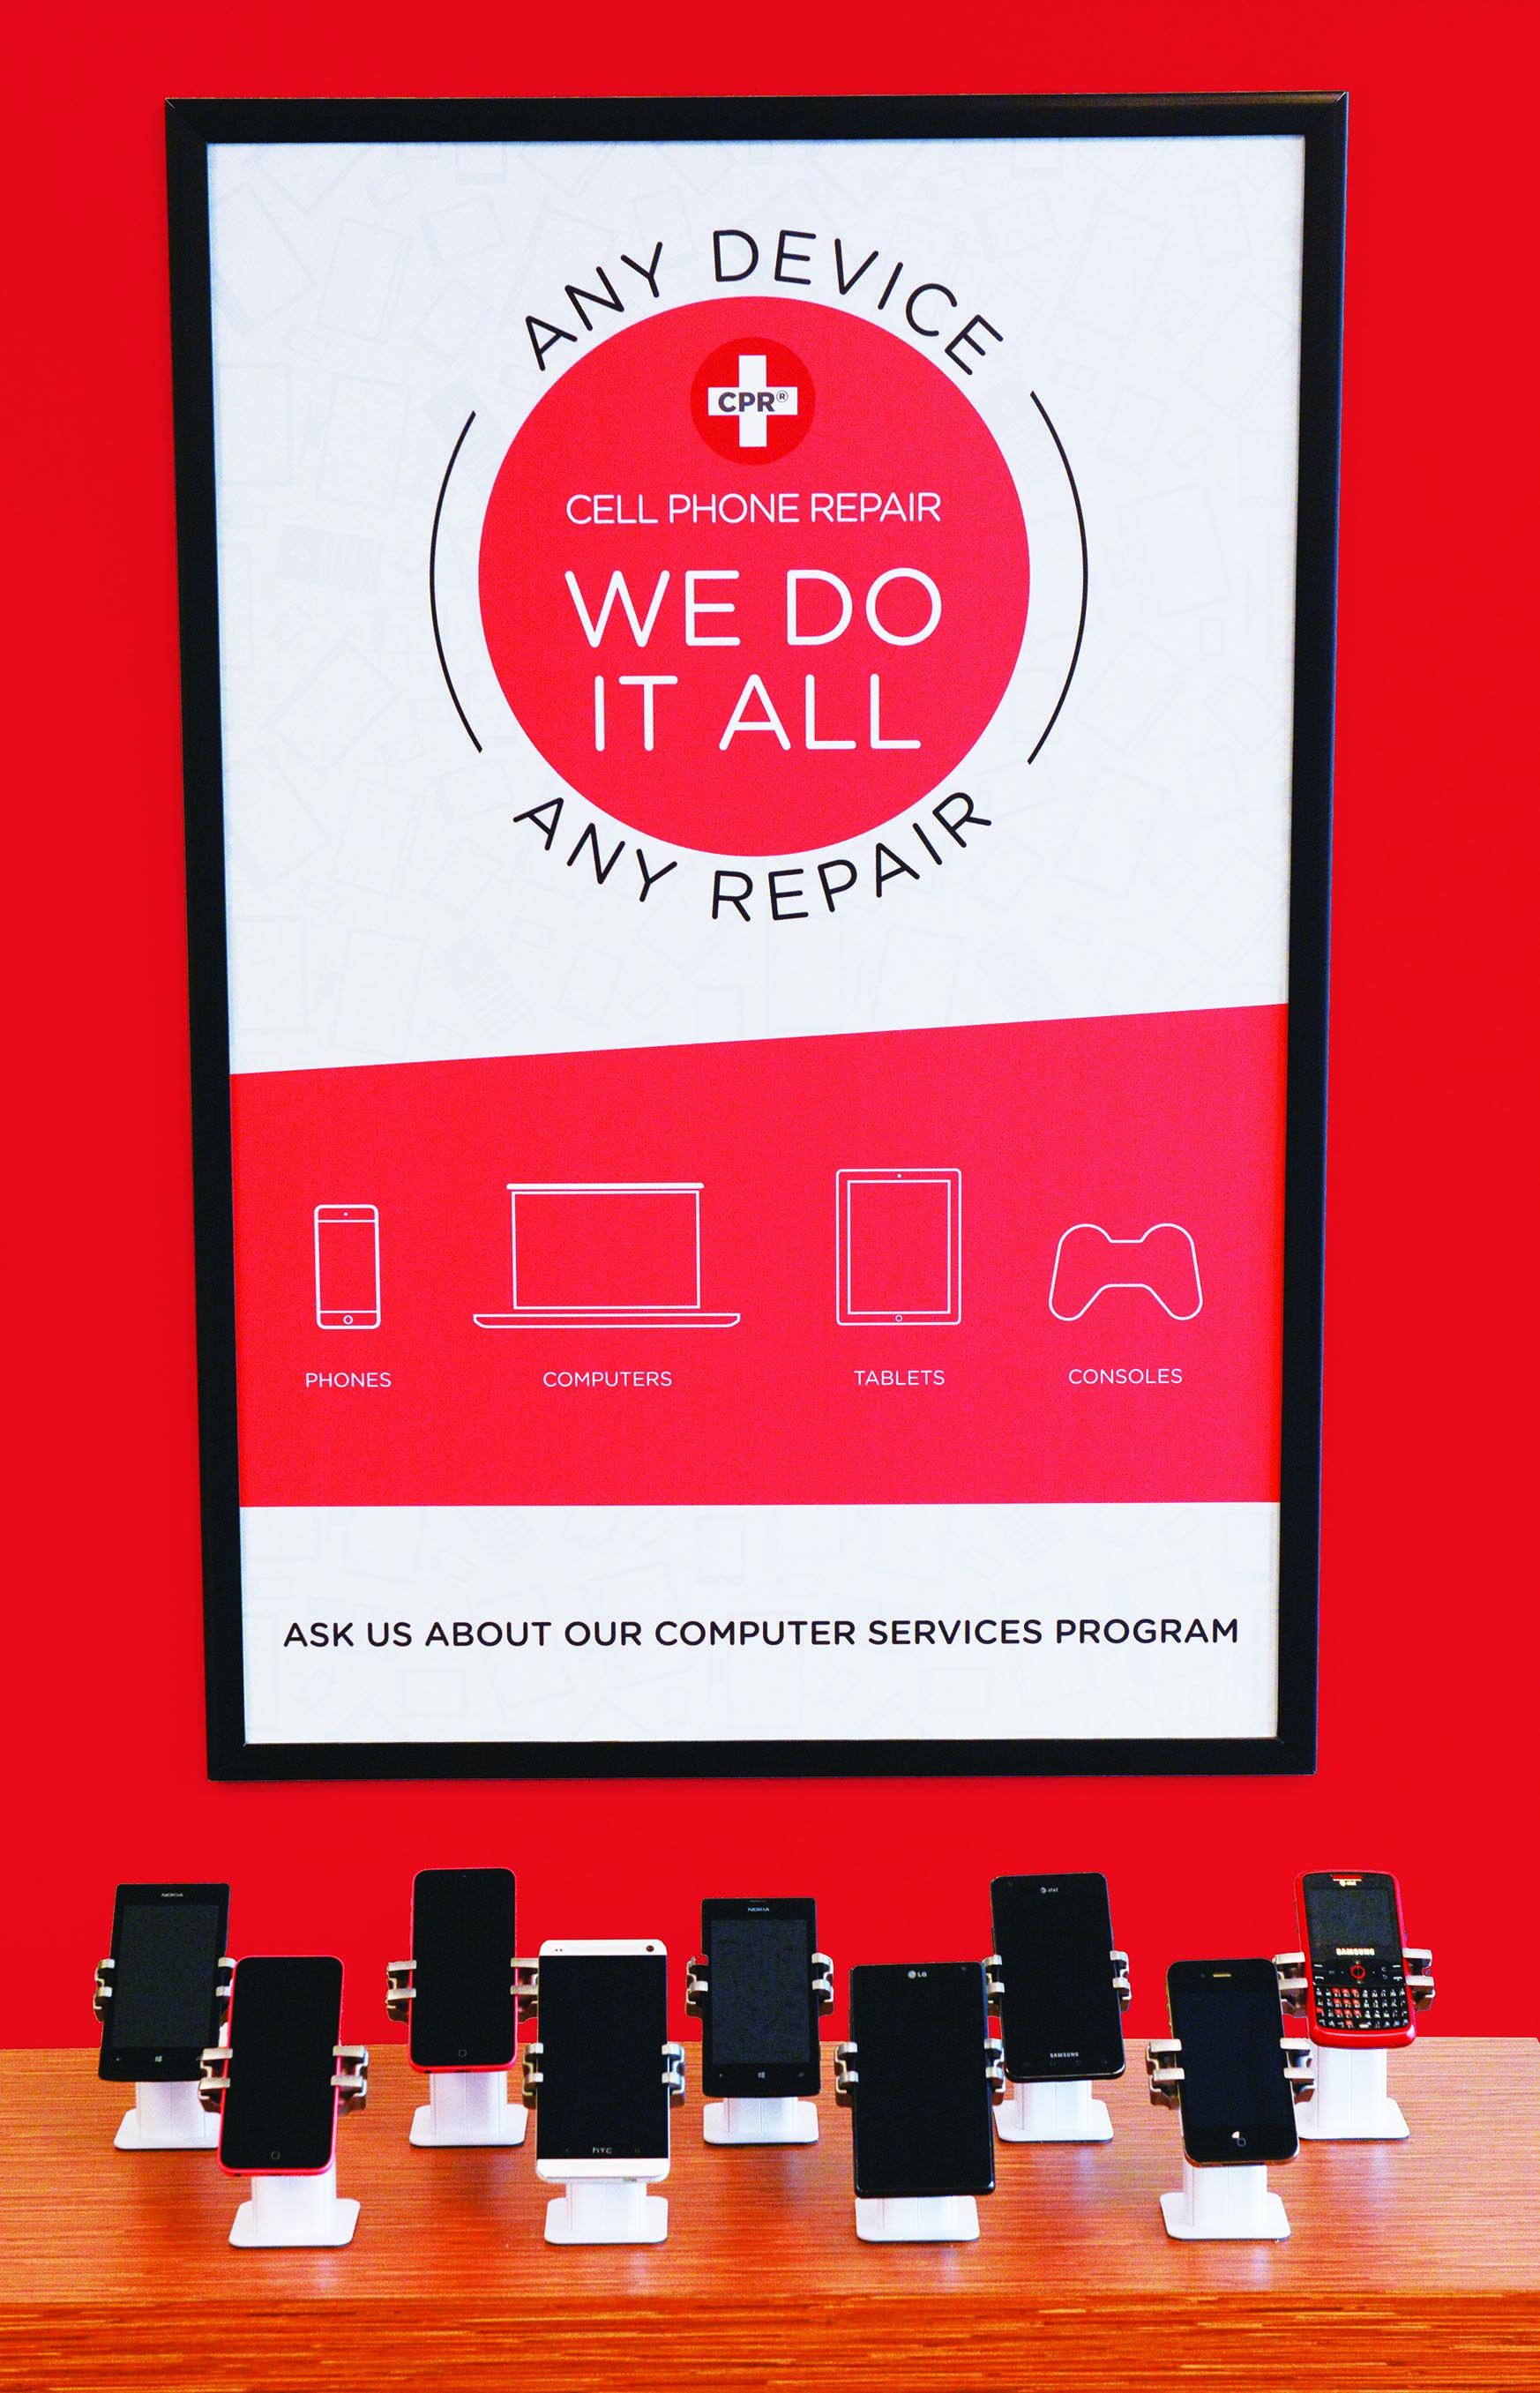 Why your customers want you to join cell phone repair cell phone repair is americas largest mobile device repair franchise with more than 260 locations the cpr family prides itself on being an asset to their 1betcityfo Gallery